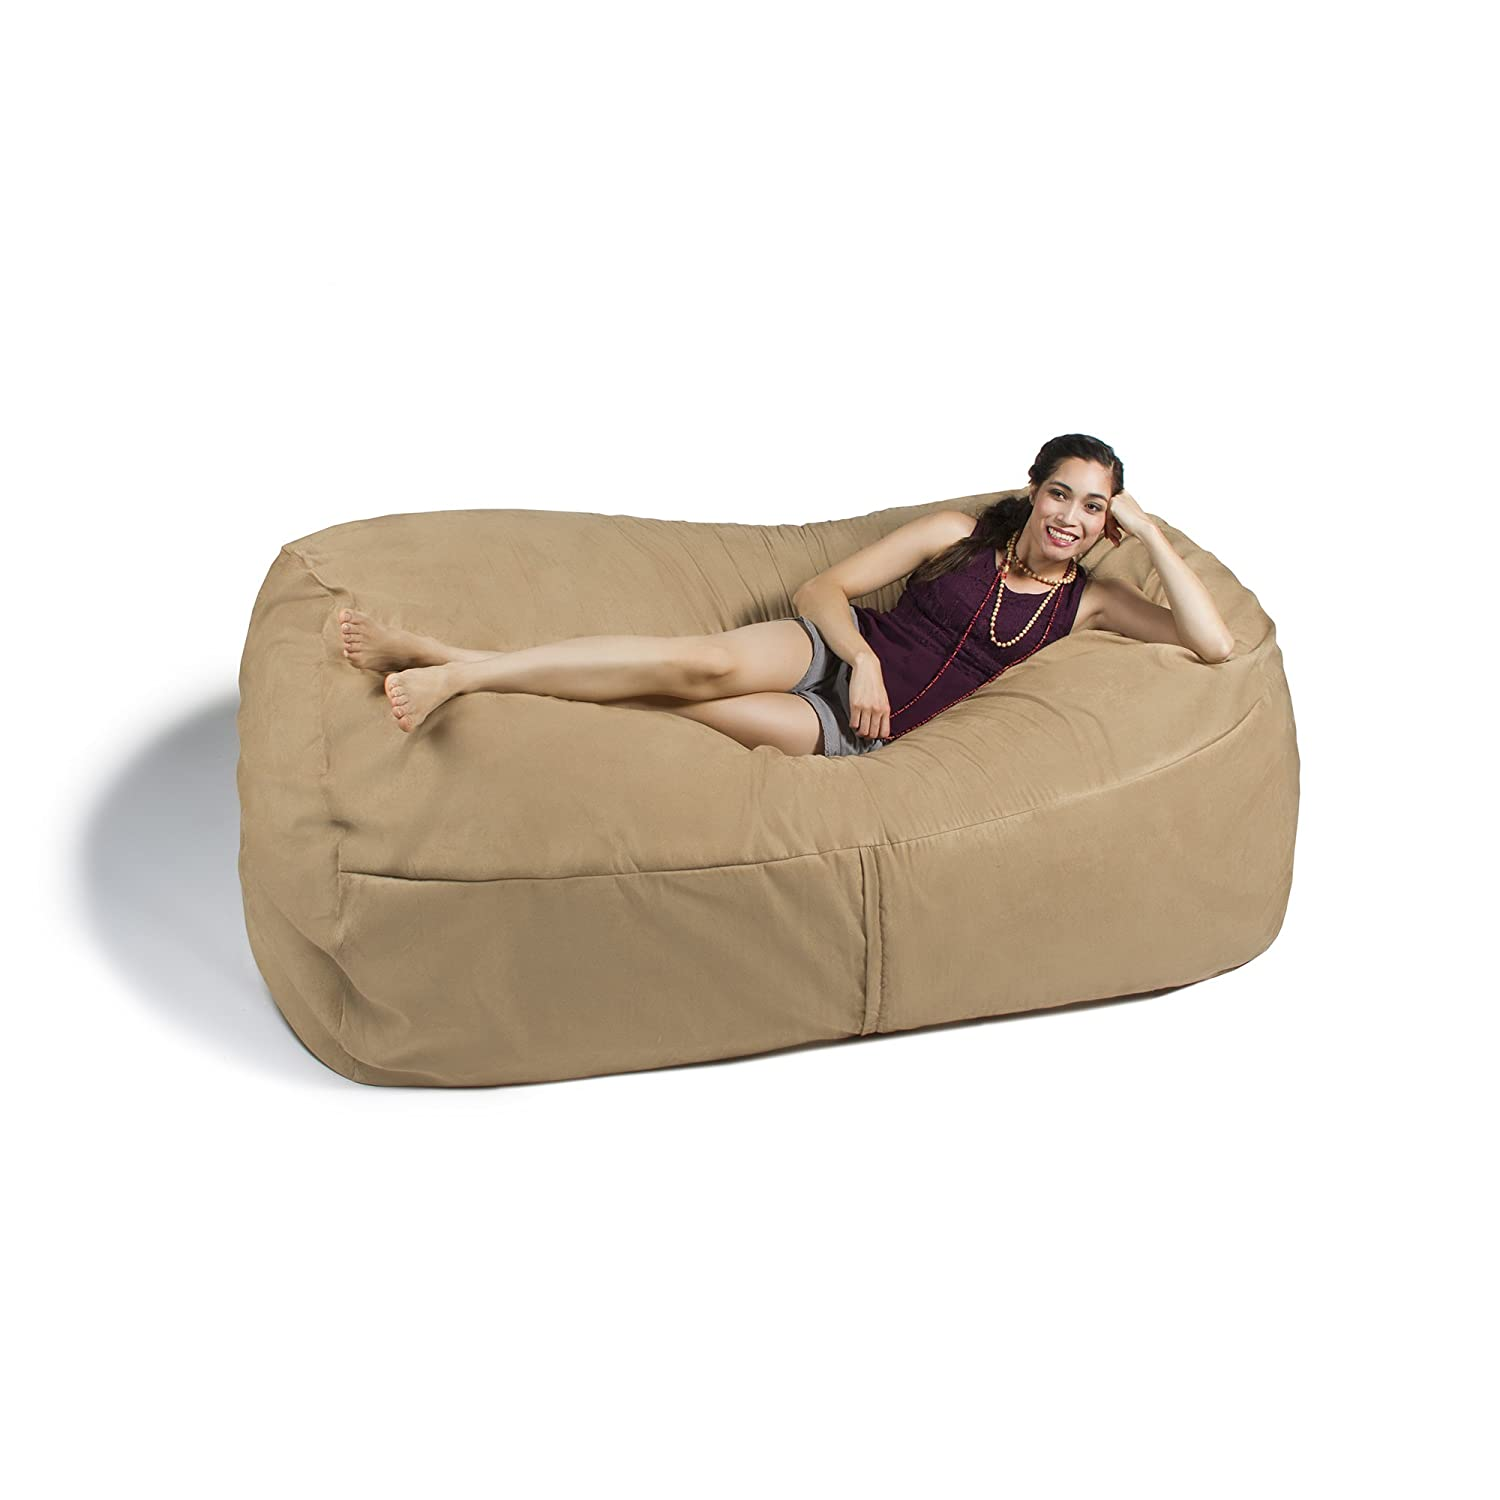 Amazon.com: Jaxx Giant Bean Bag Lounger 7-Foot, Camel: Kitchen & Dining - Amazon.com: Jaxx Giant Bean Bag Lounger 7-Foot, Camel: Kitchen